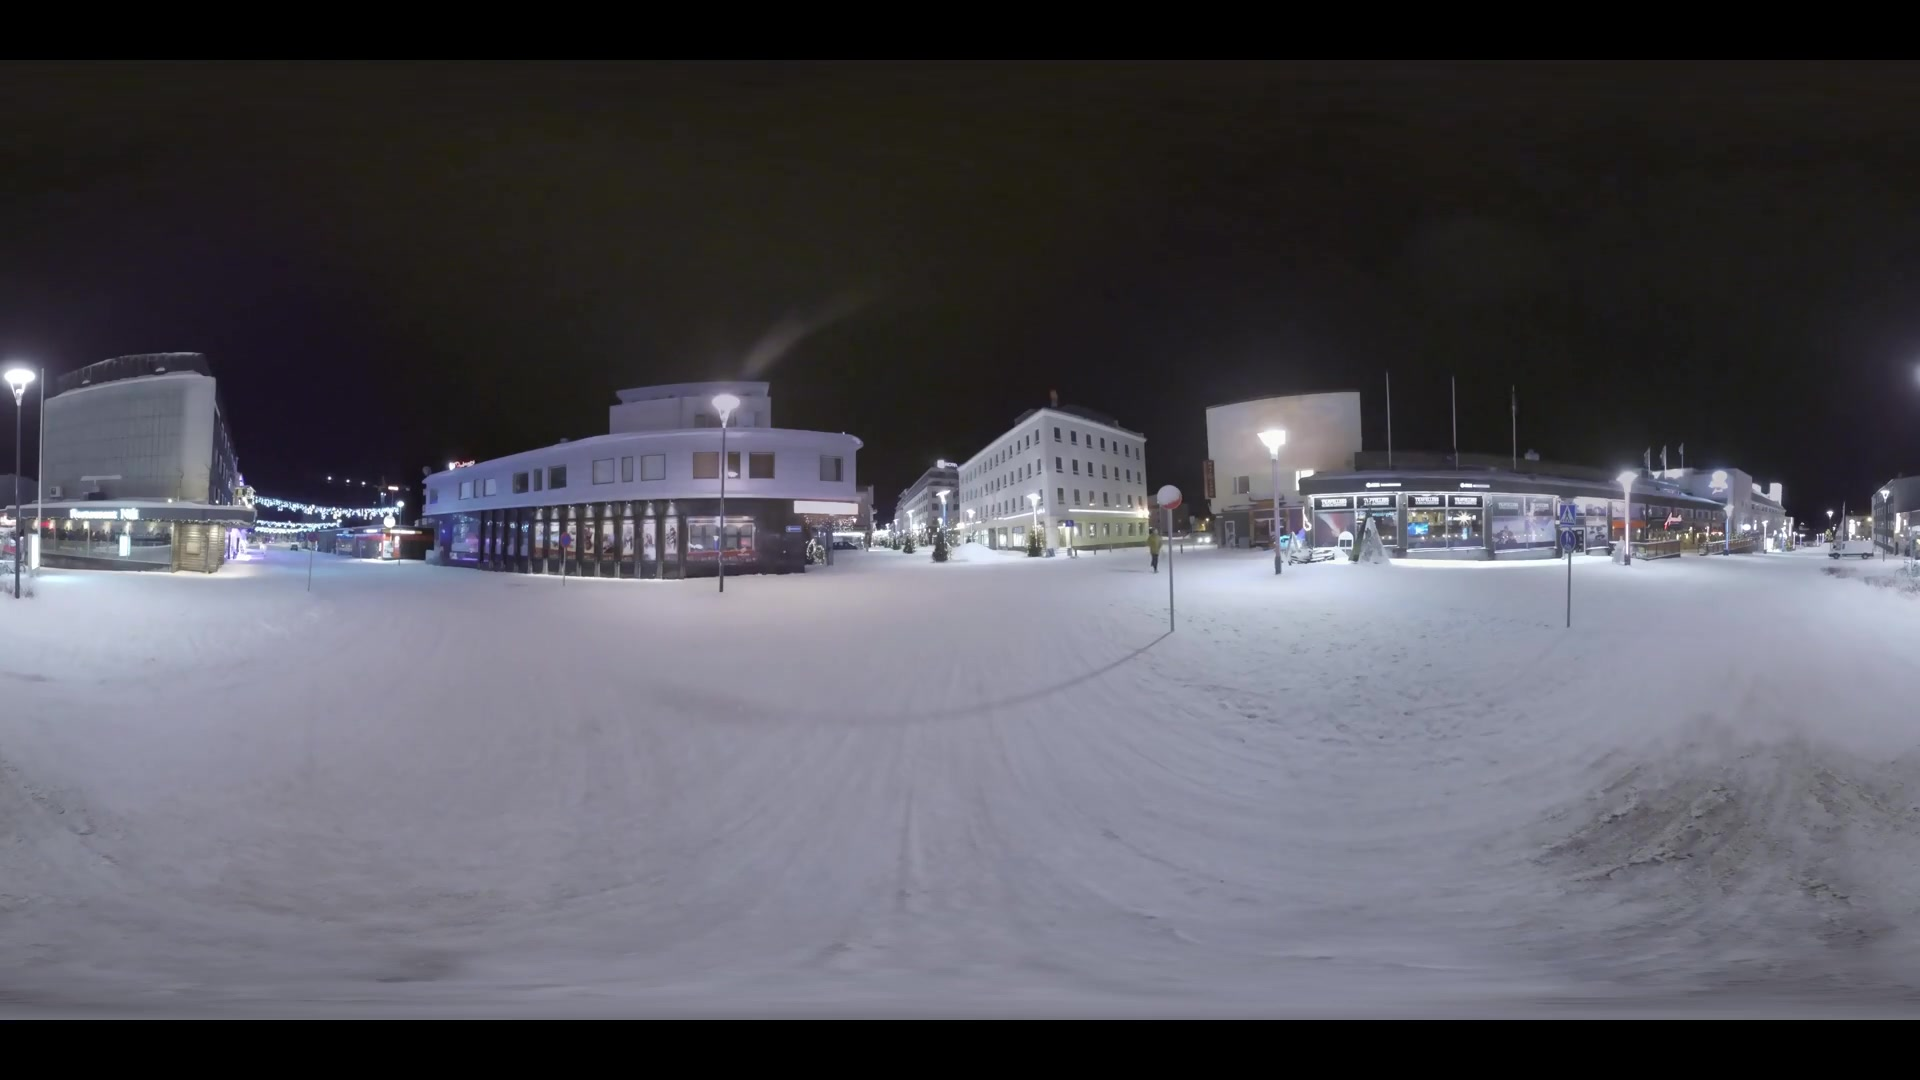 ROVANIEMI, FINLAND- JANUARY 01, 2017: 360 VR Video. Cityscape of night city in winter. Man (with model release) having a walk in snowy street illuminated with lanterns and Christmas decorations